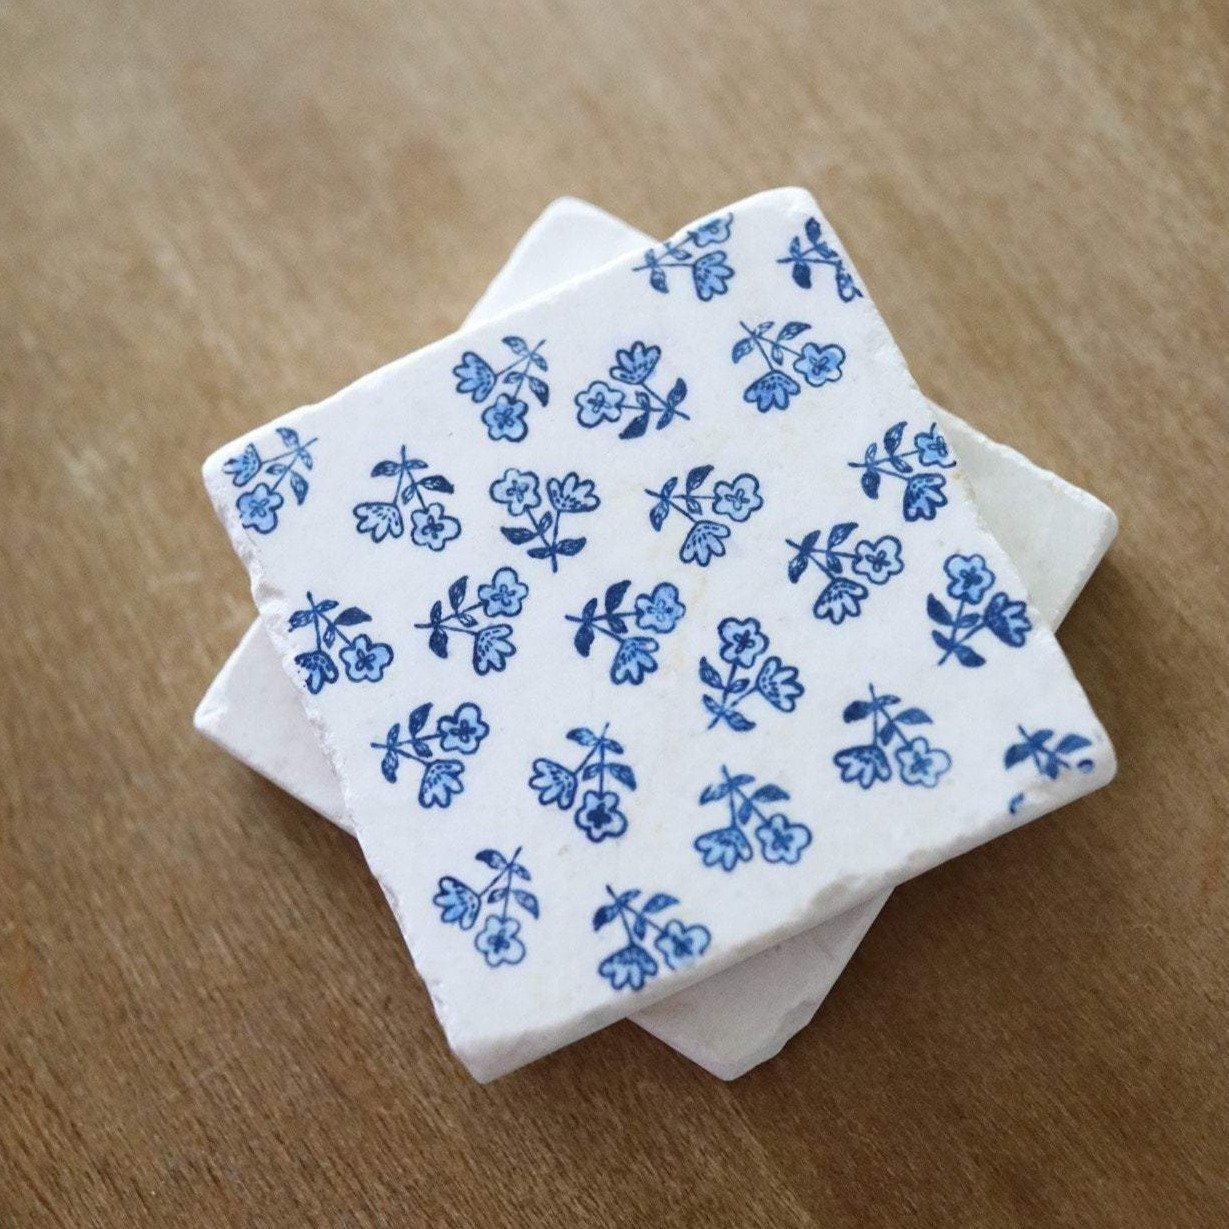 Summer Party Hostess Gifts: Lace, Grace, and Peonies Blue Floral Marble Coasters